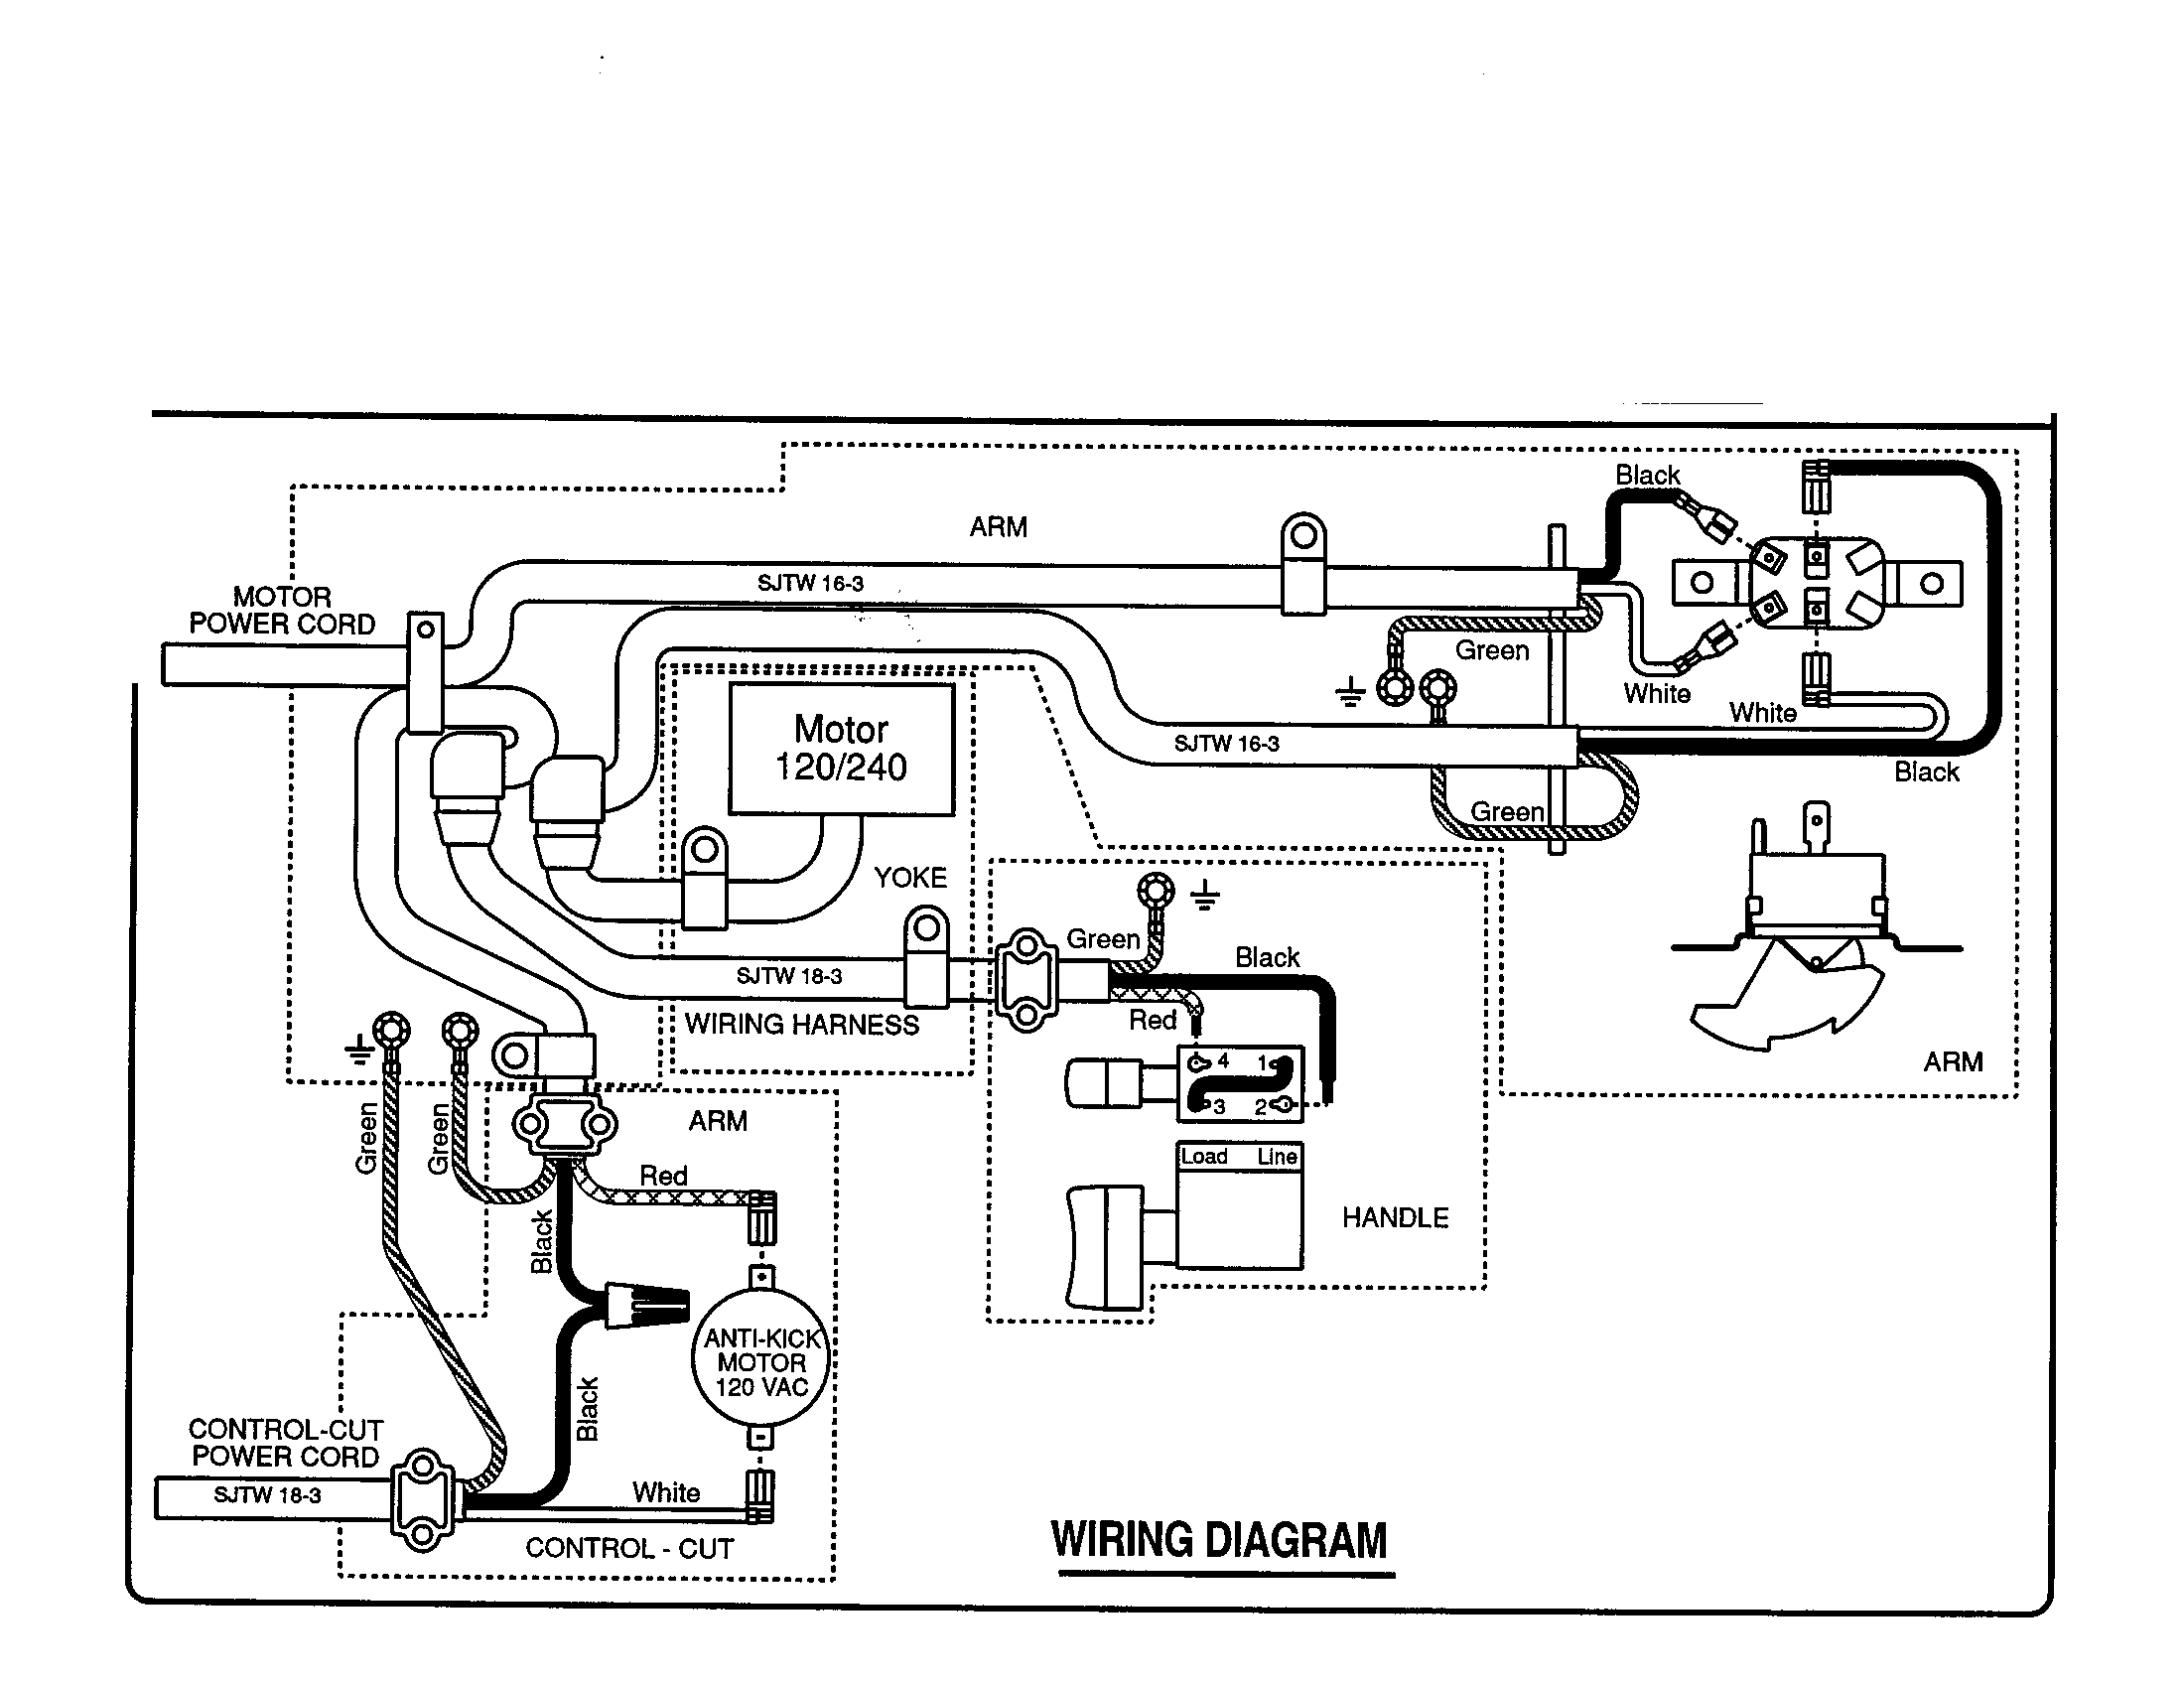 Eb12a Wiring Diagram Coleman Evcon Layout Diagrams Thermostat Two Stage Eb15b Furnace Model 7665 856 Schematic